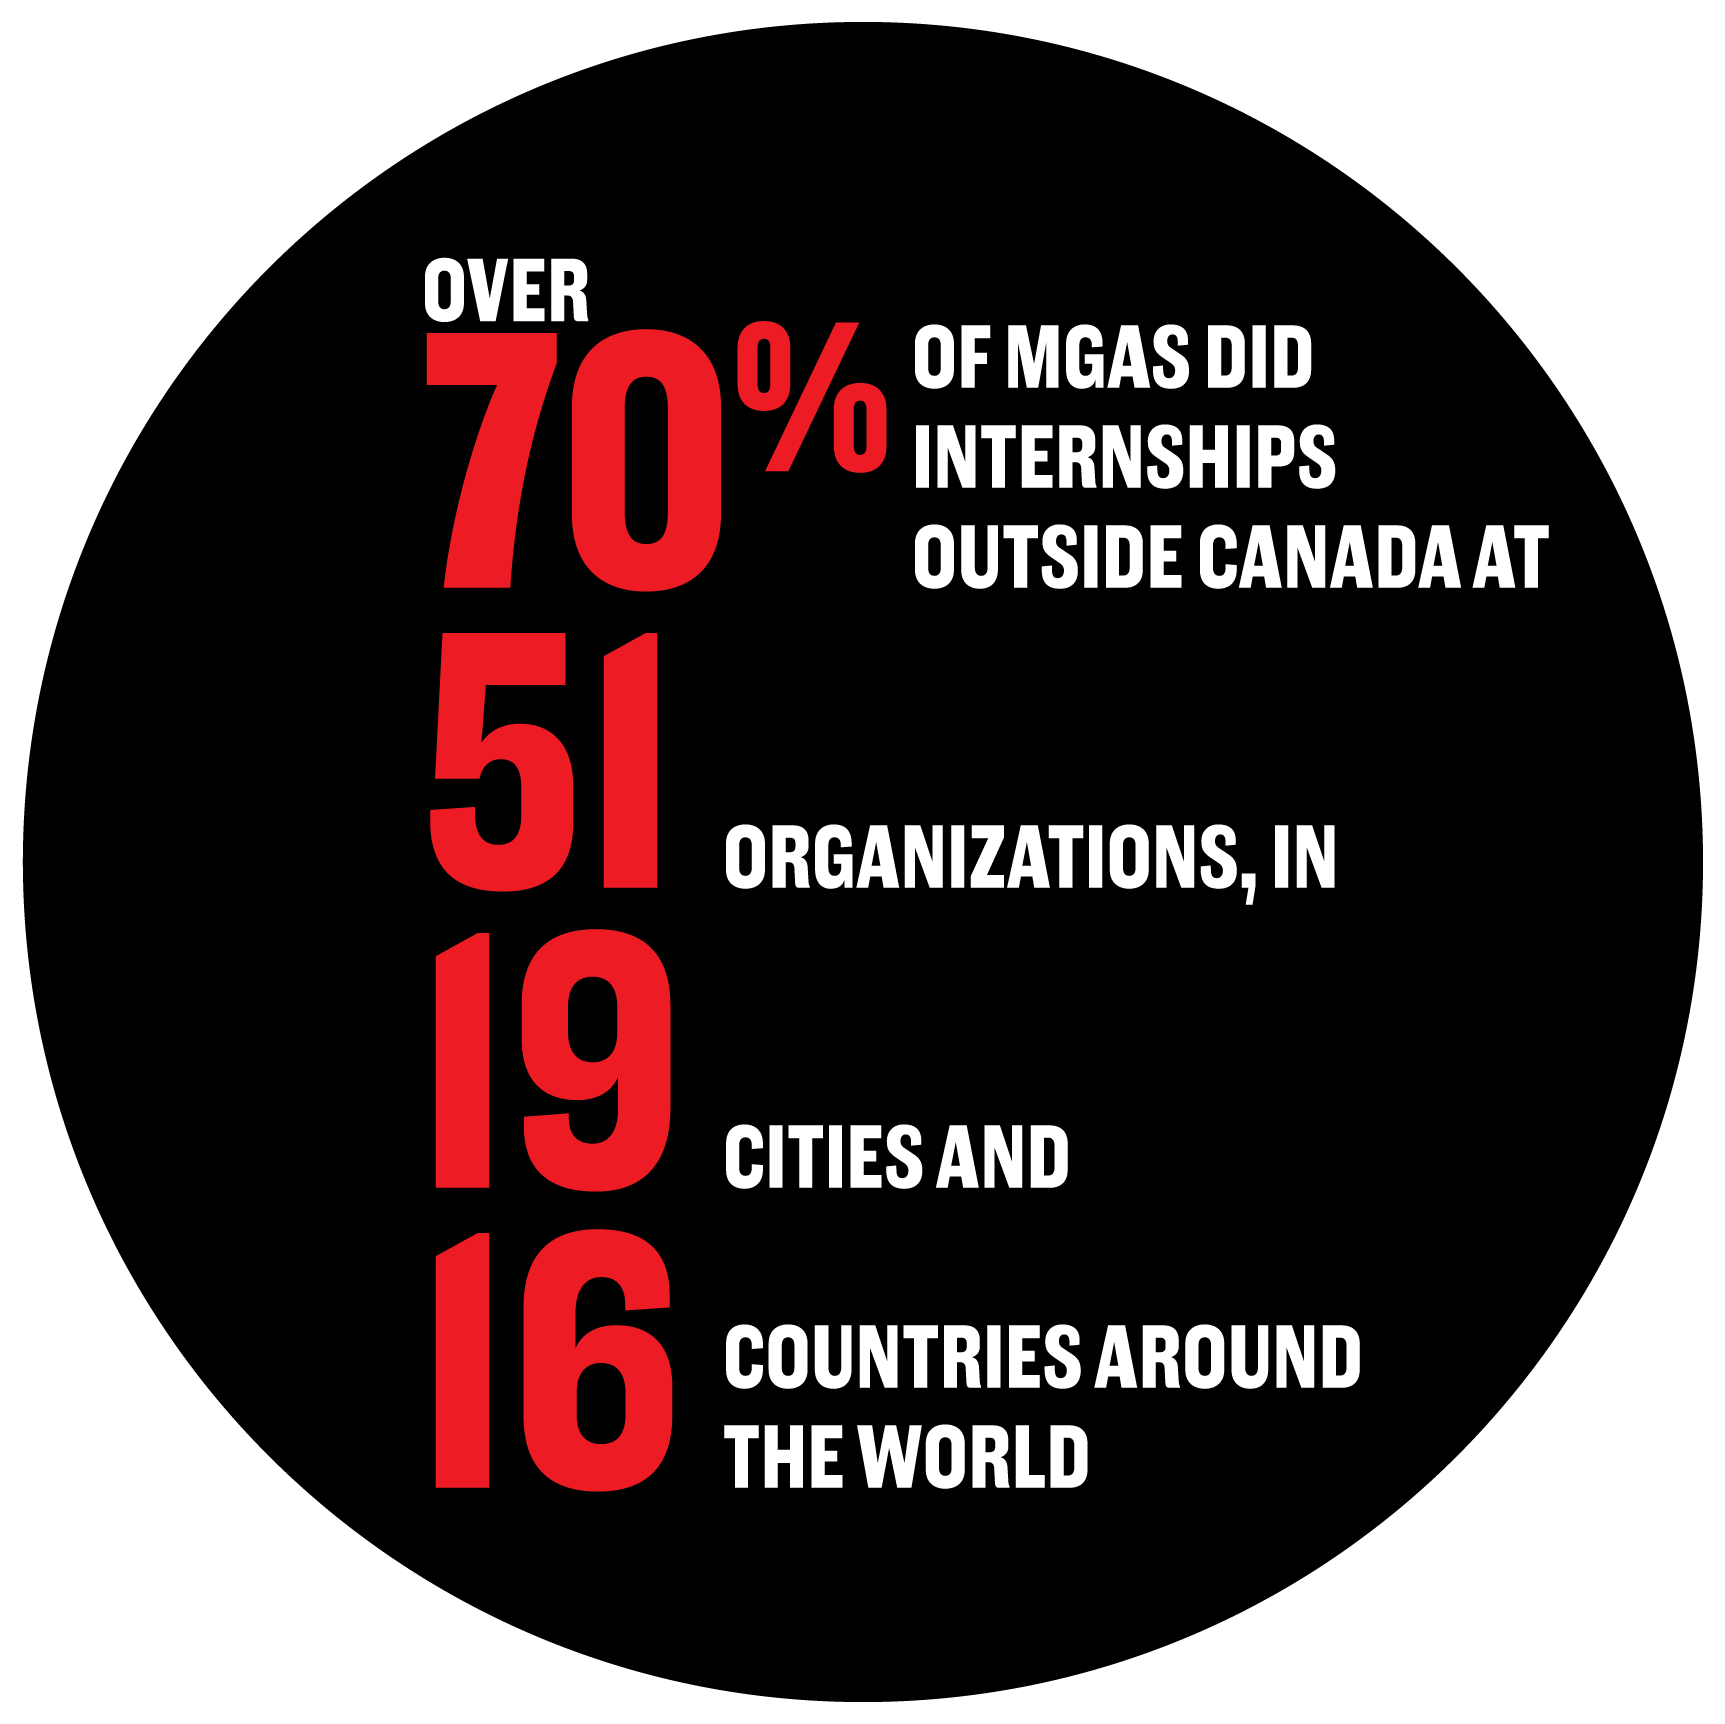 Over 70% of MGAs did internships outside Canada at 51 organizations, in 19 cities and 16 countries around the world.